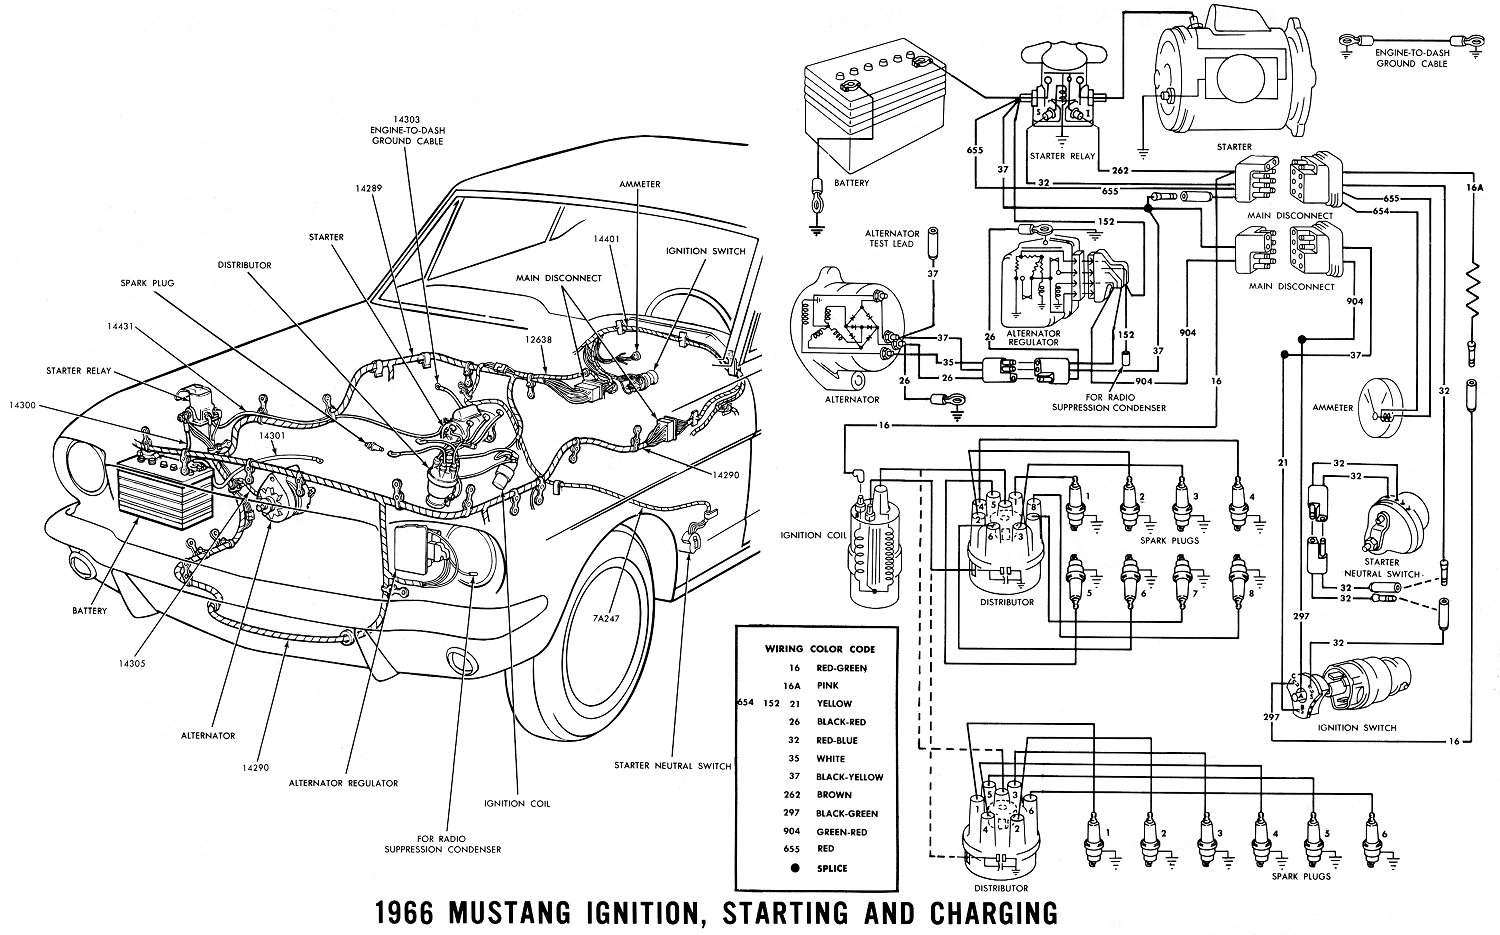 505614 Starter Solenoid Question 1966 Mustang on 1965 mustang gauge wiring diagram